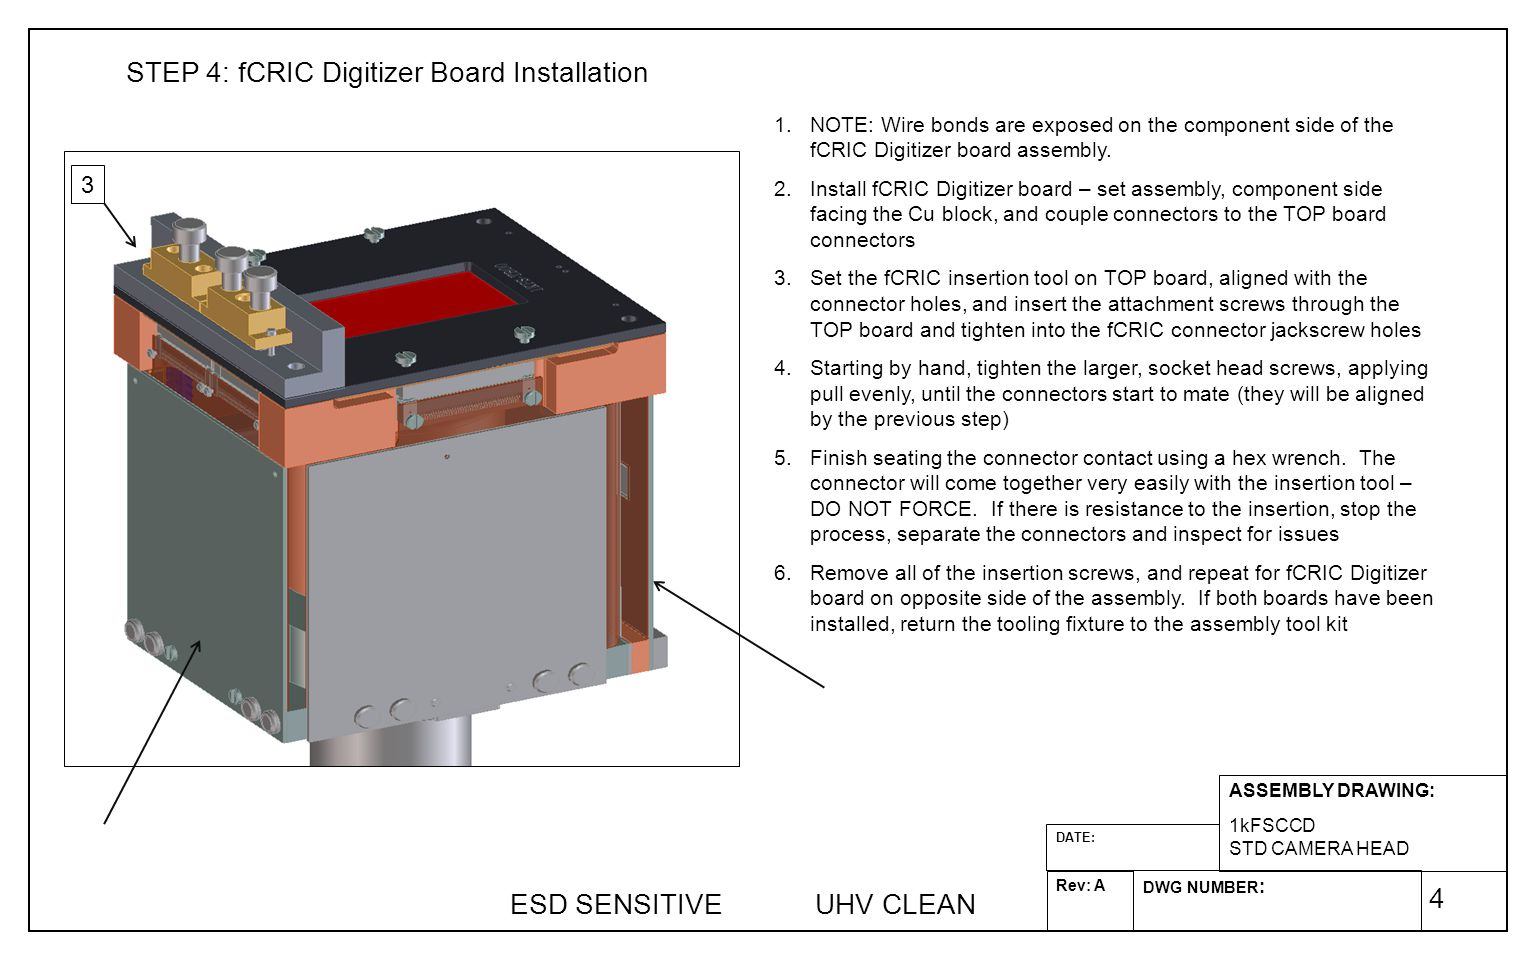 4 ASSEMBLY DRAWING: 1kFSCCD STD CAMERA HEAD DWG NUMBER : Rev: A DATE: STEP 4: fCRIC Digitizer Board Installation 1.NOTE: Wire bonds are exposed on the component side of the fCRIC Digitizer board assembly.